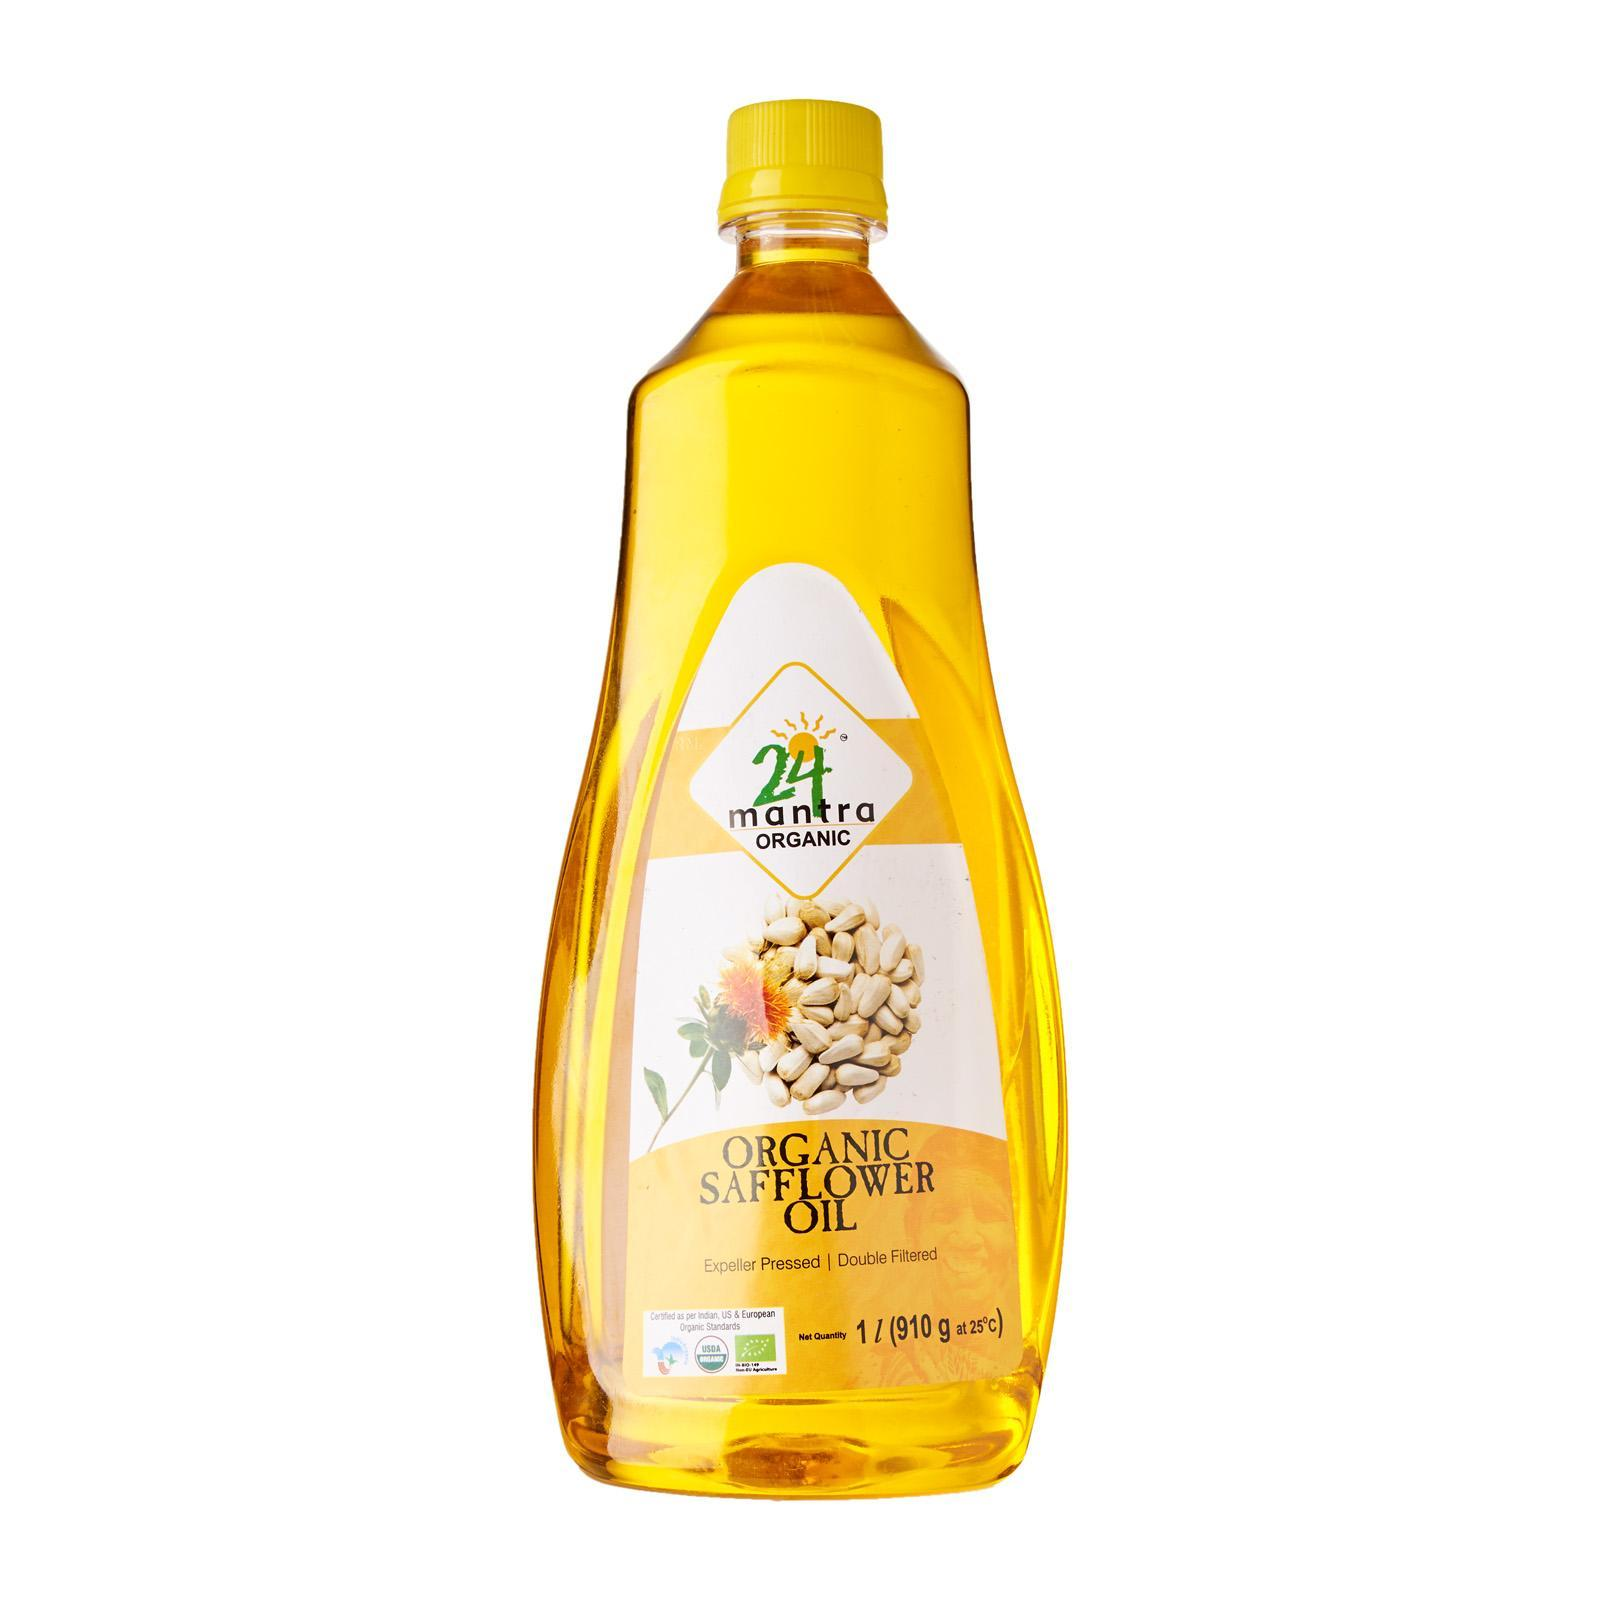 24 Mantra Organic Safflower Oil By Redmart.